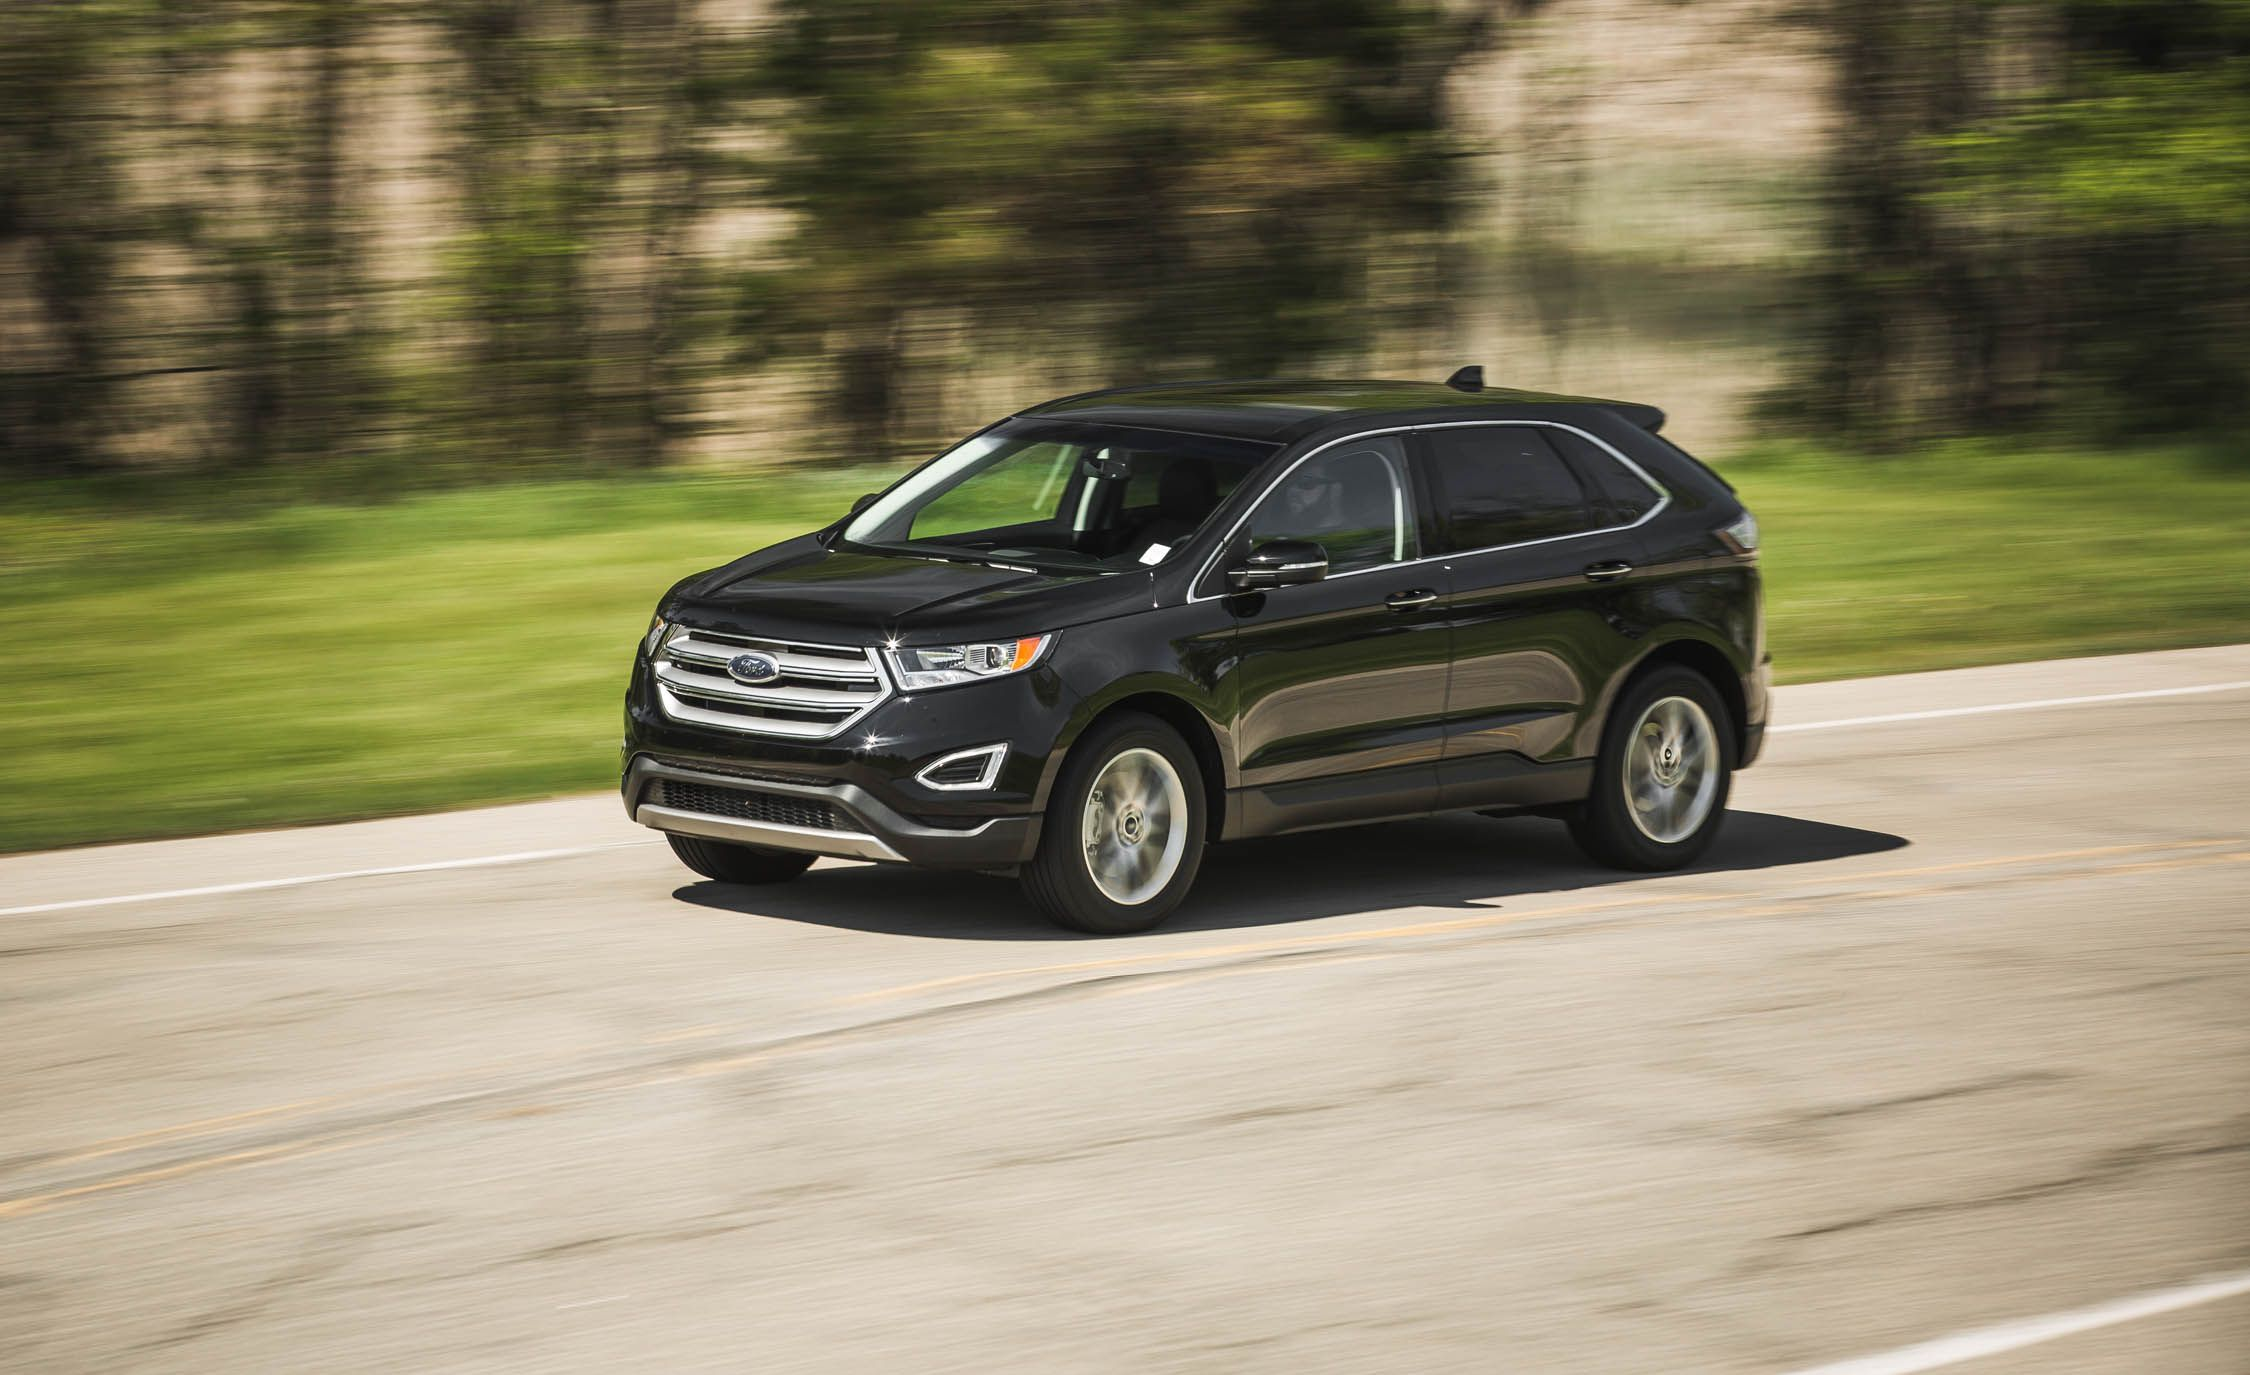 Best 3 Row Suv 2017 >> 2017 Ford Edge | In-Depth Model Review | Car and Driver